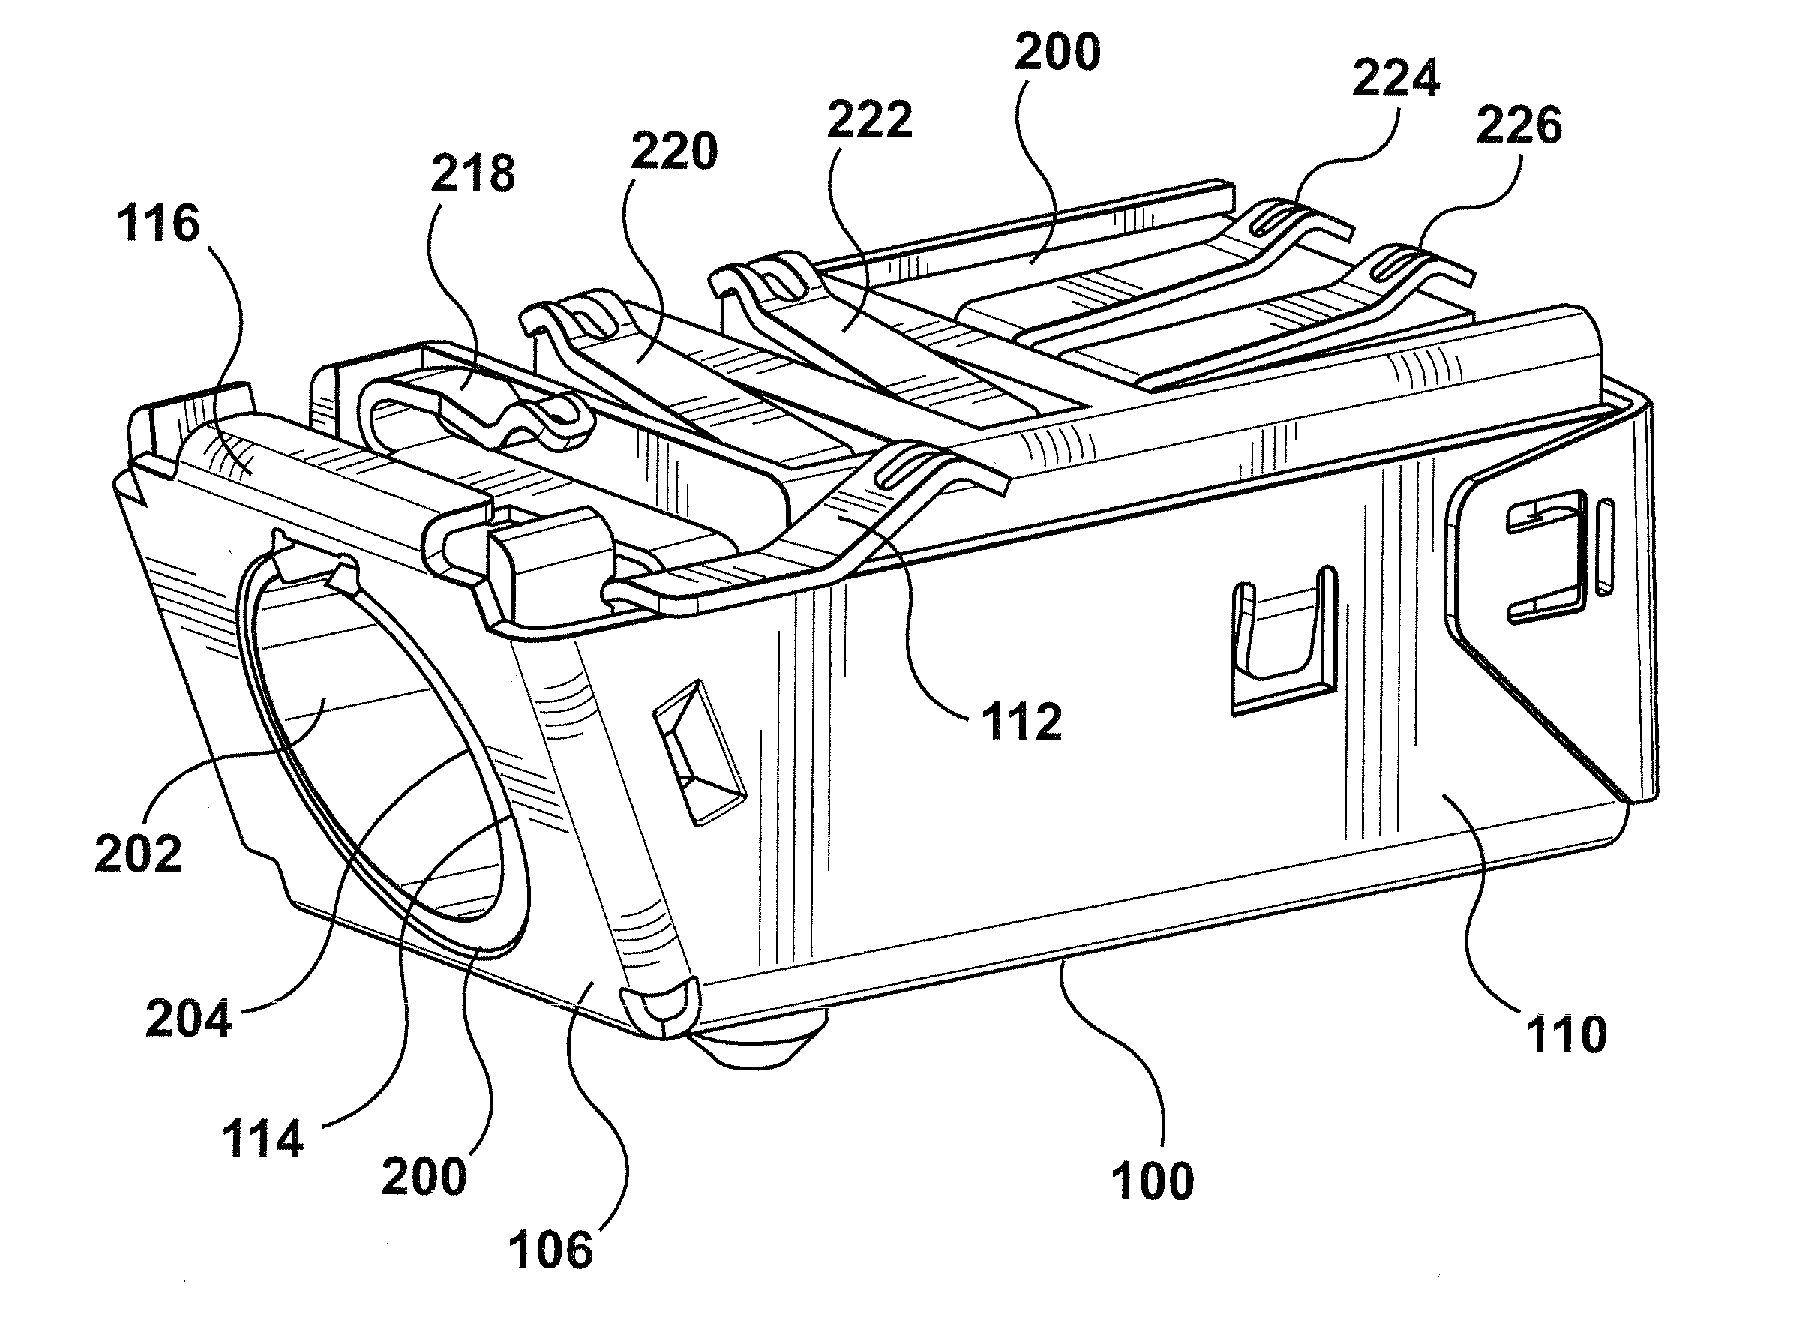 1999 Chevy Silverado Heater Core Removal 2000 S10 Wiring Diagram Patent Us20120250911 Audio Jack With Emi Shielding Google Patents Replacement